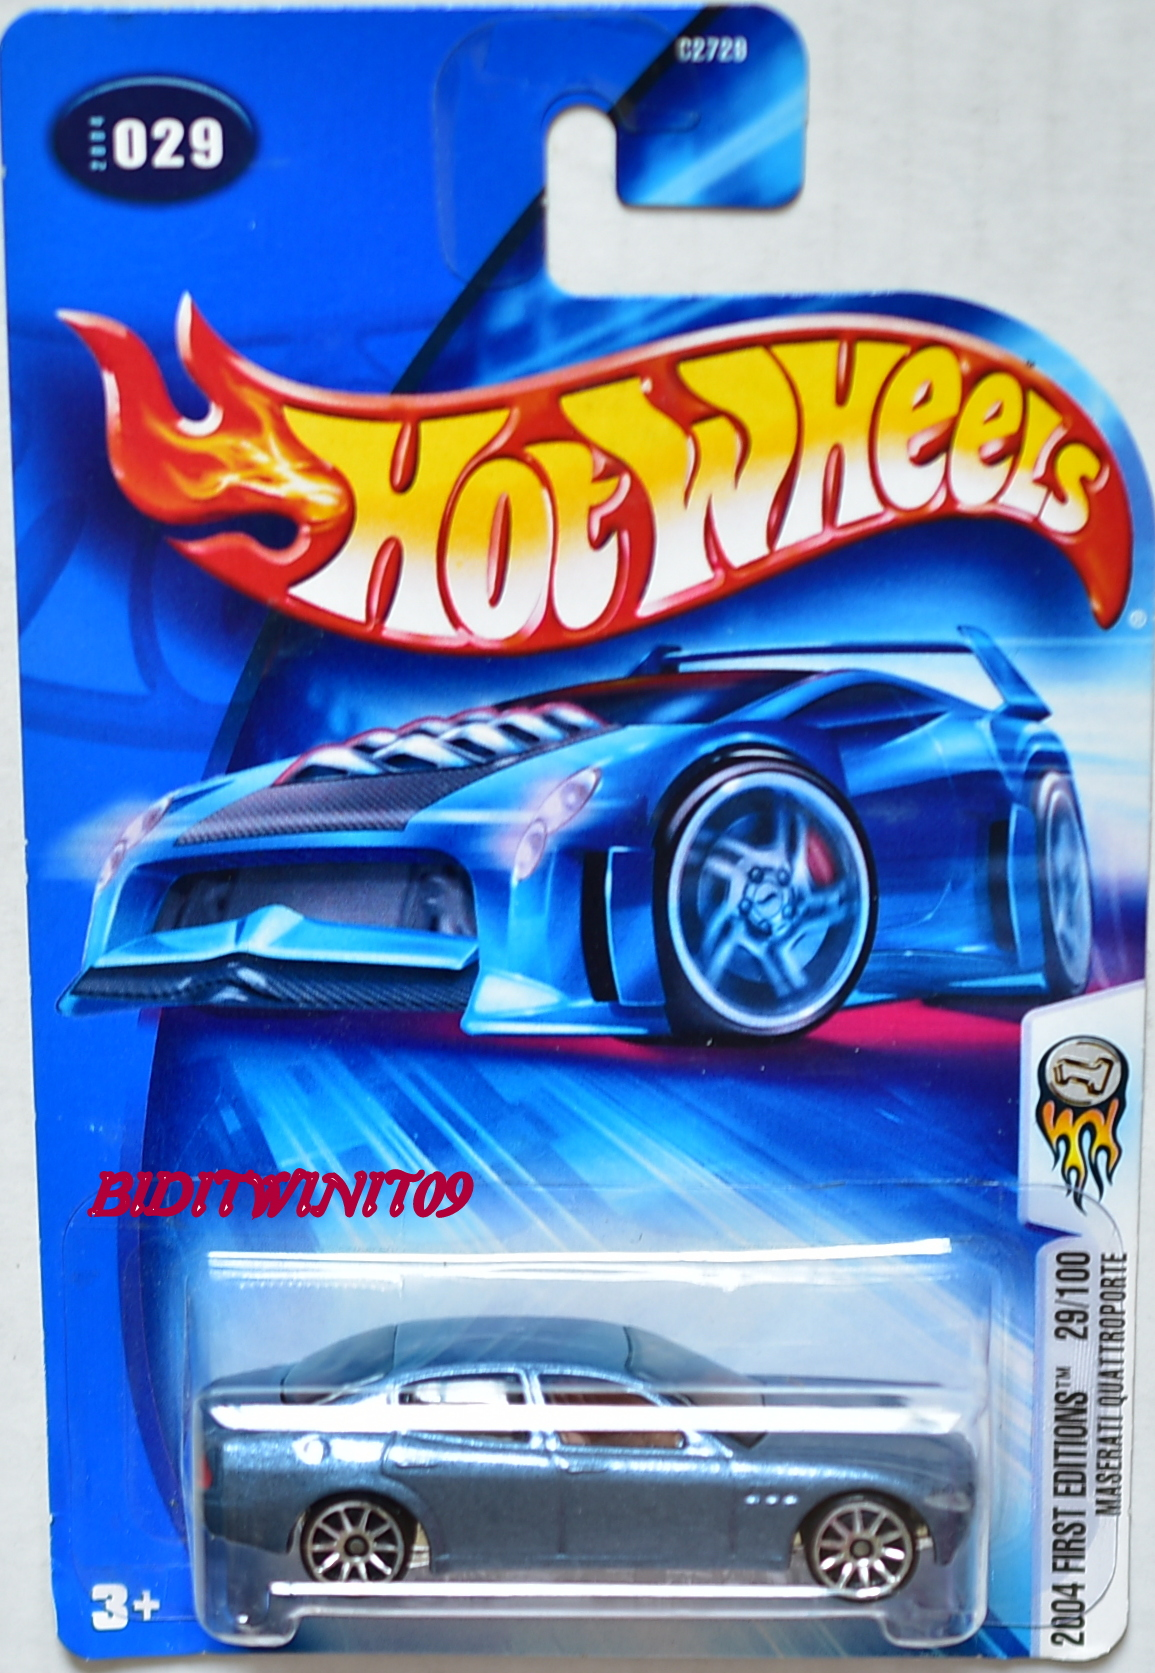 HOT WHEELS 2004 FIRST EDITIONS MASERATI QUATTROPORTE #029